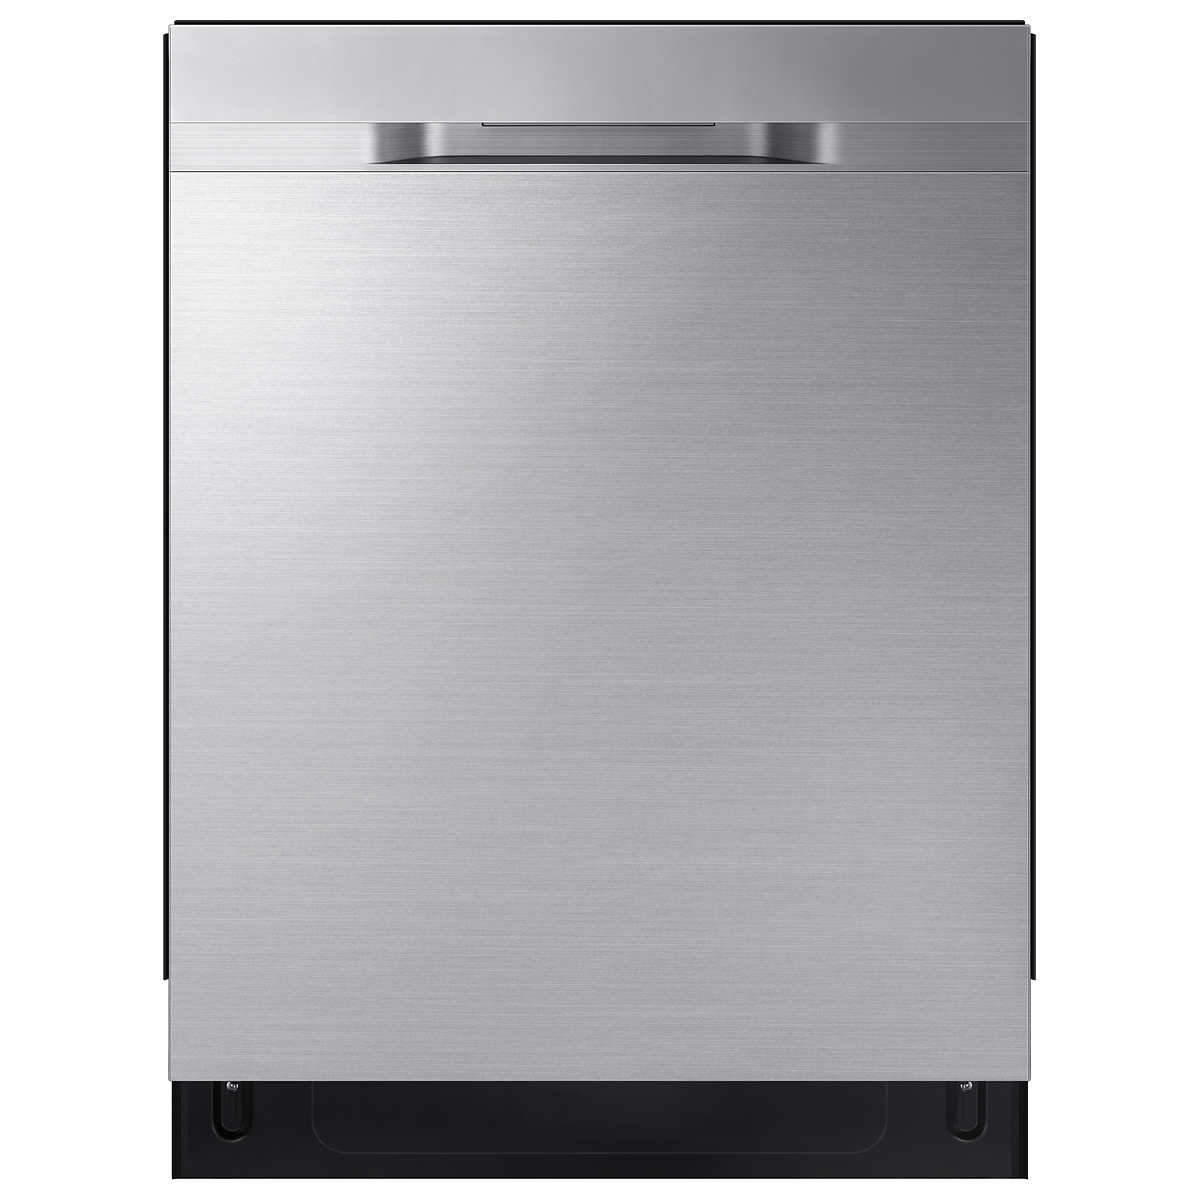 Samsung Top Control 48 Db Dishwasher With Stormwash And Stainless Steel Tub